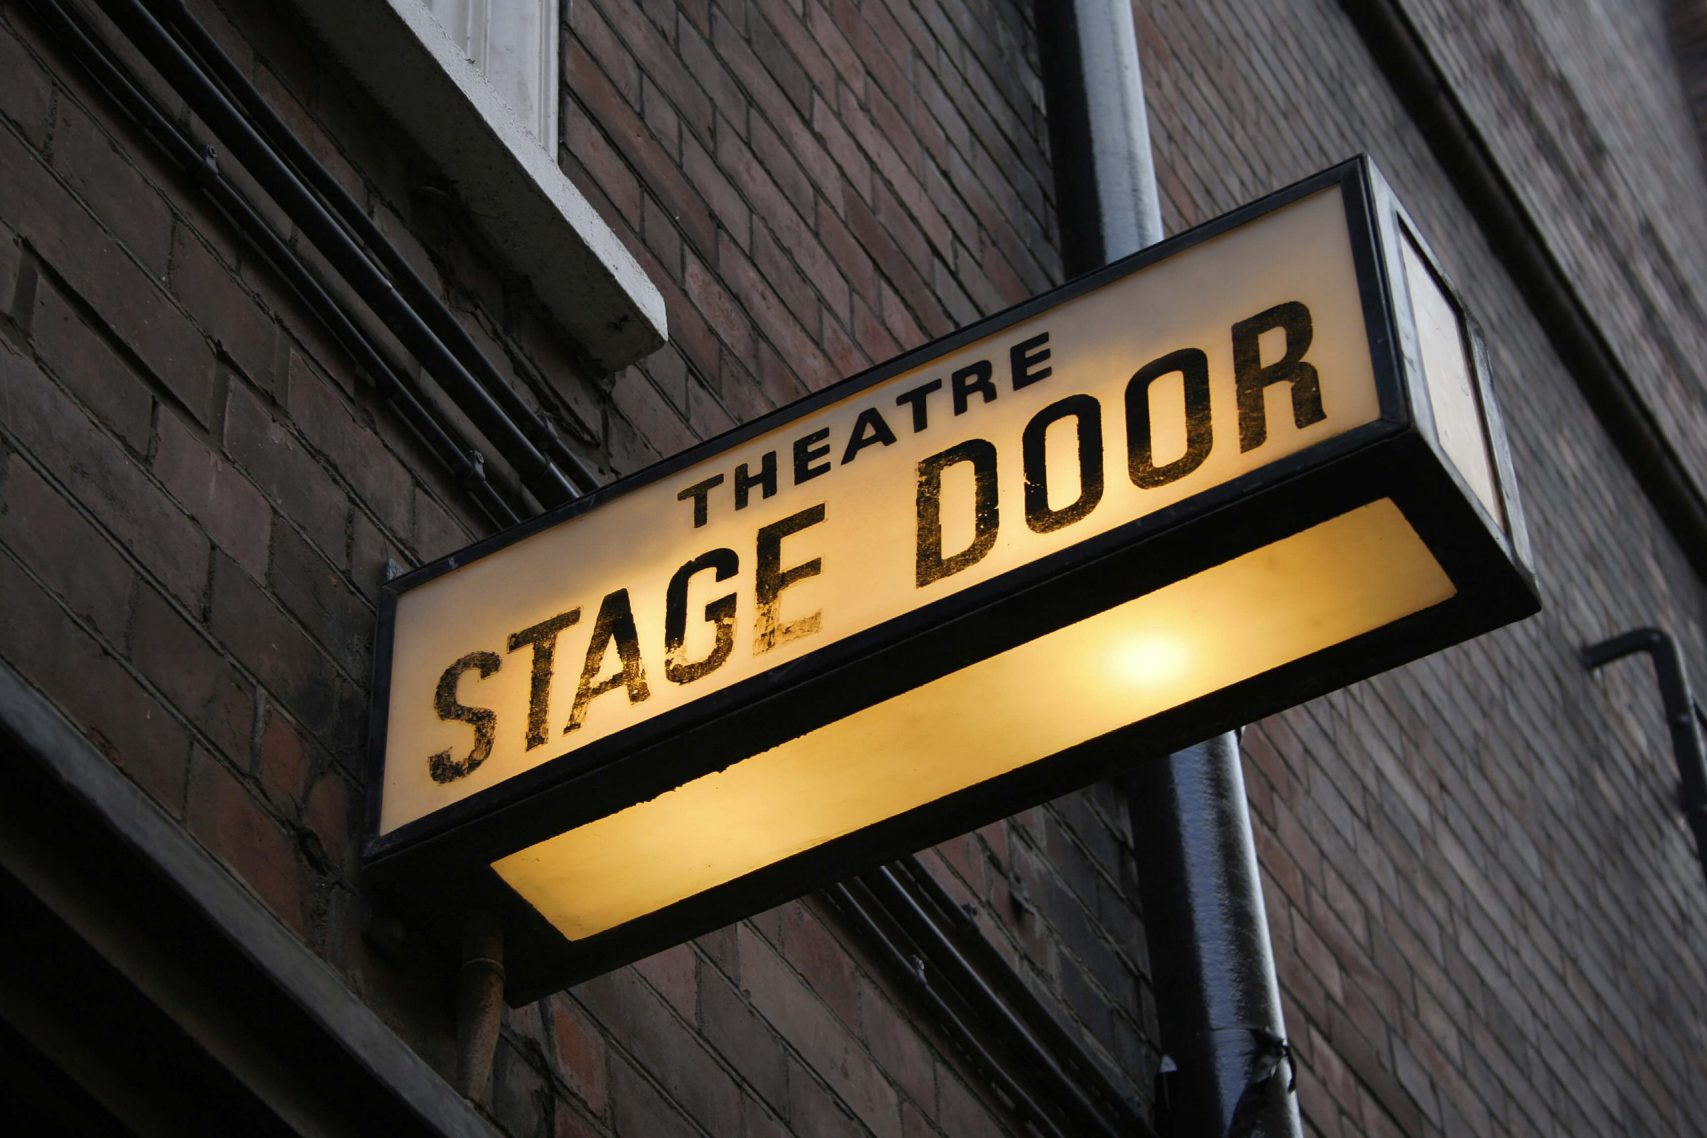 A sign of a theatre stage door